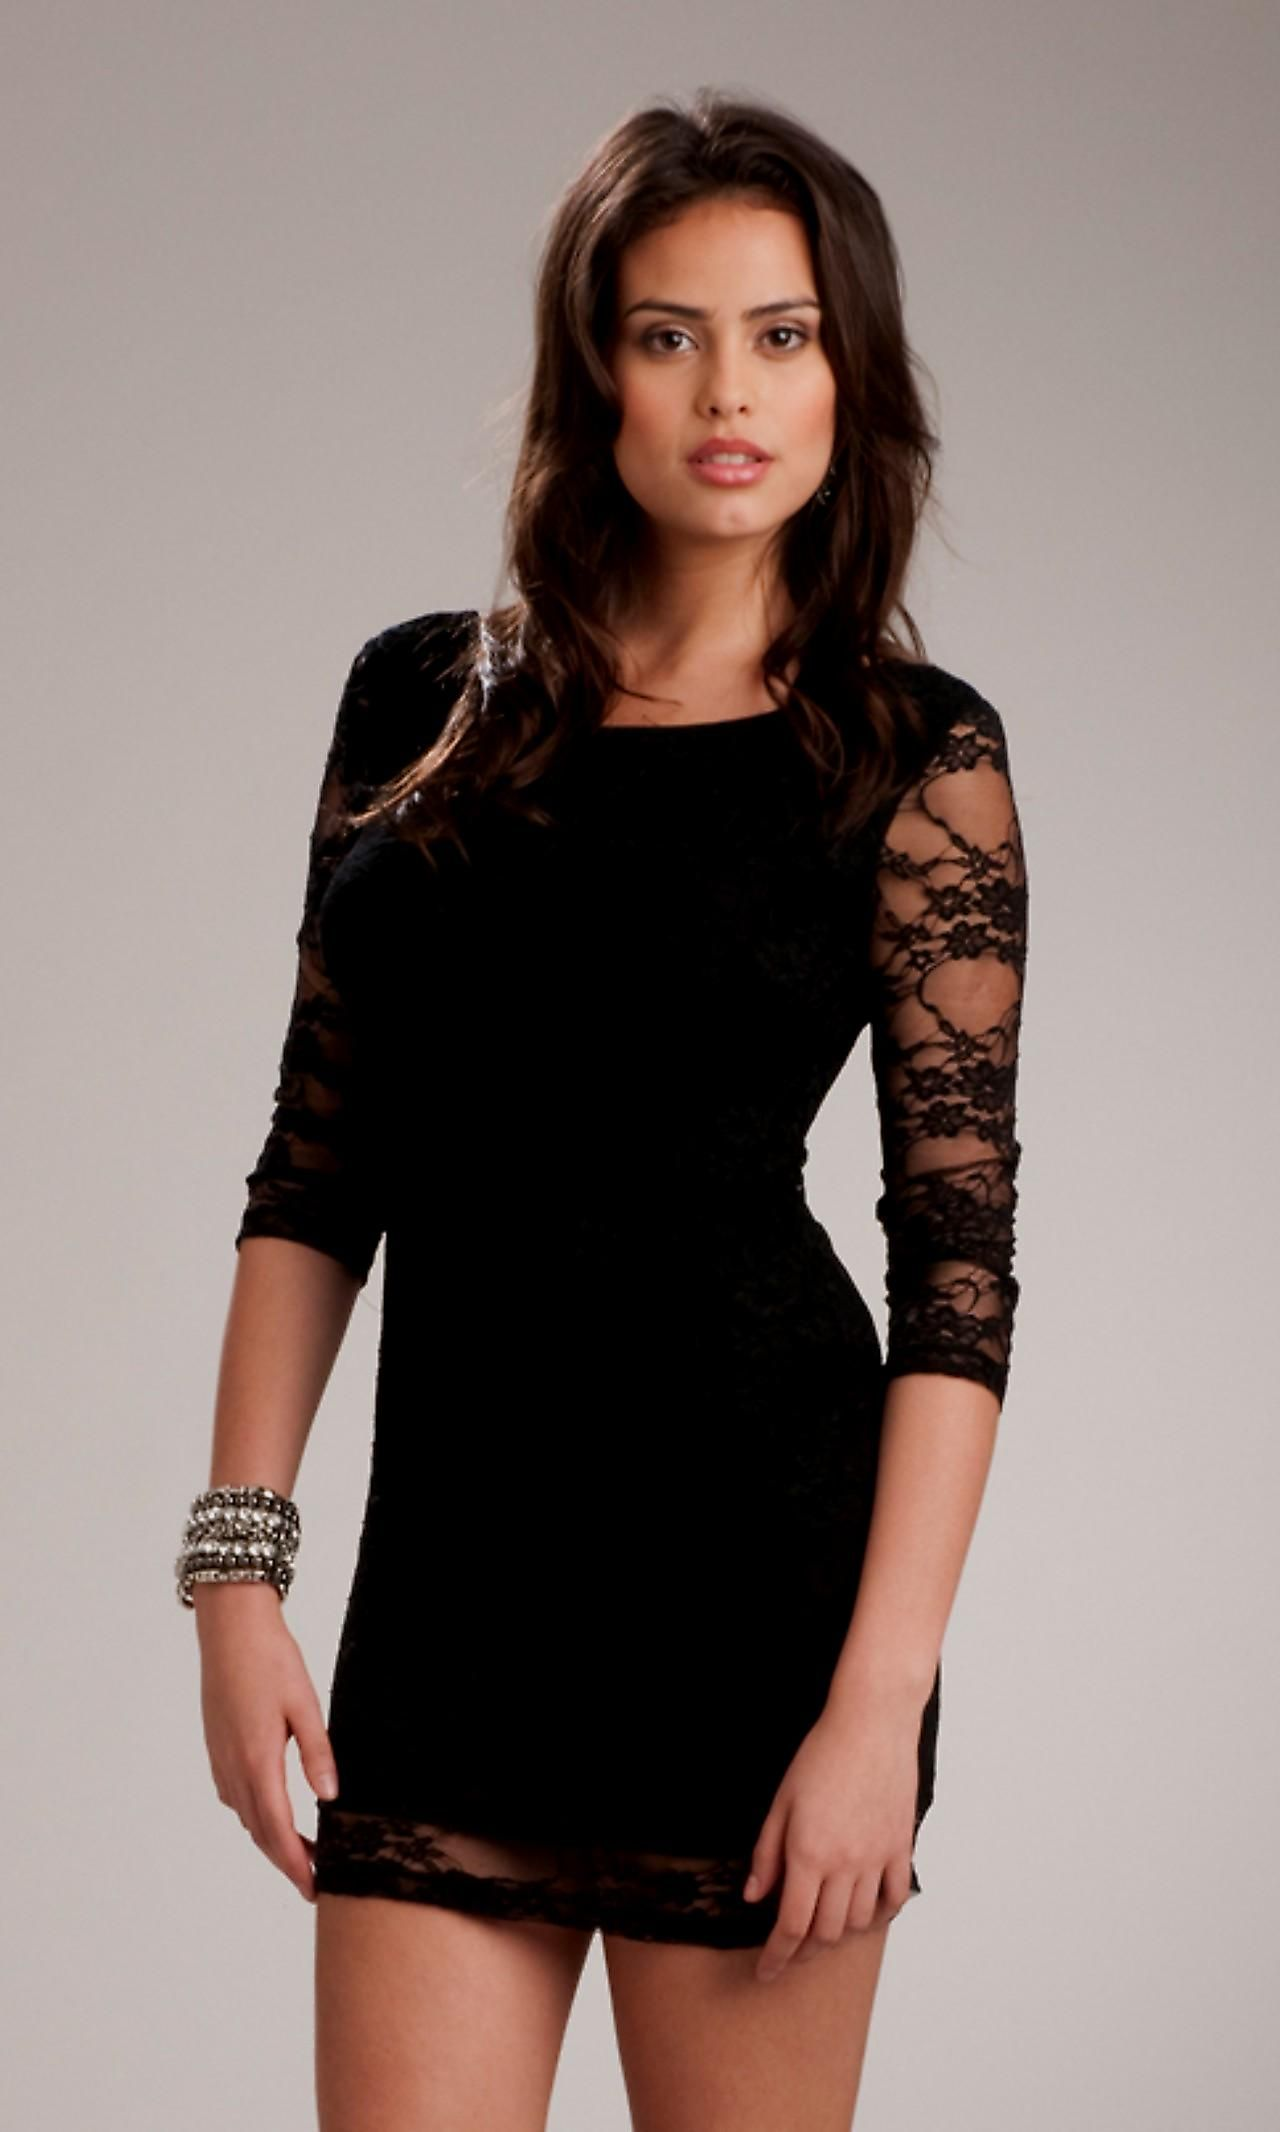 Images of Cute Long Sleeve Dresses - Fashion Trends and Models ...